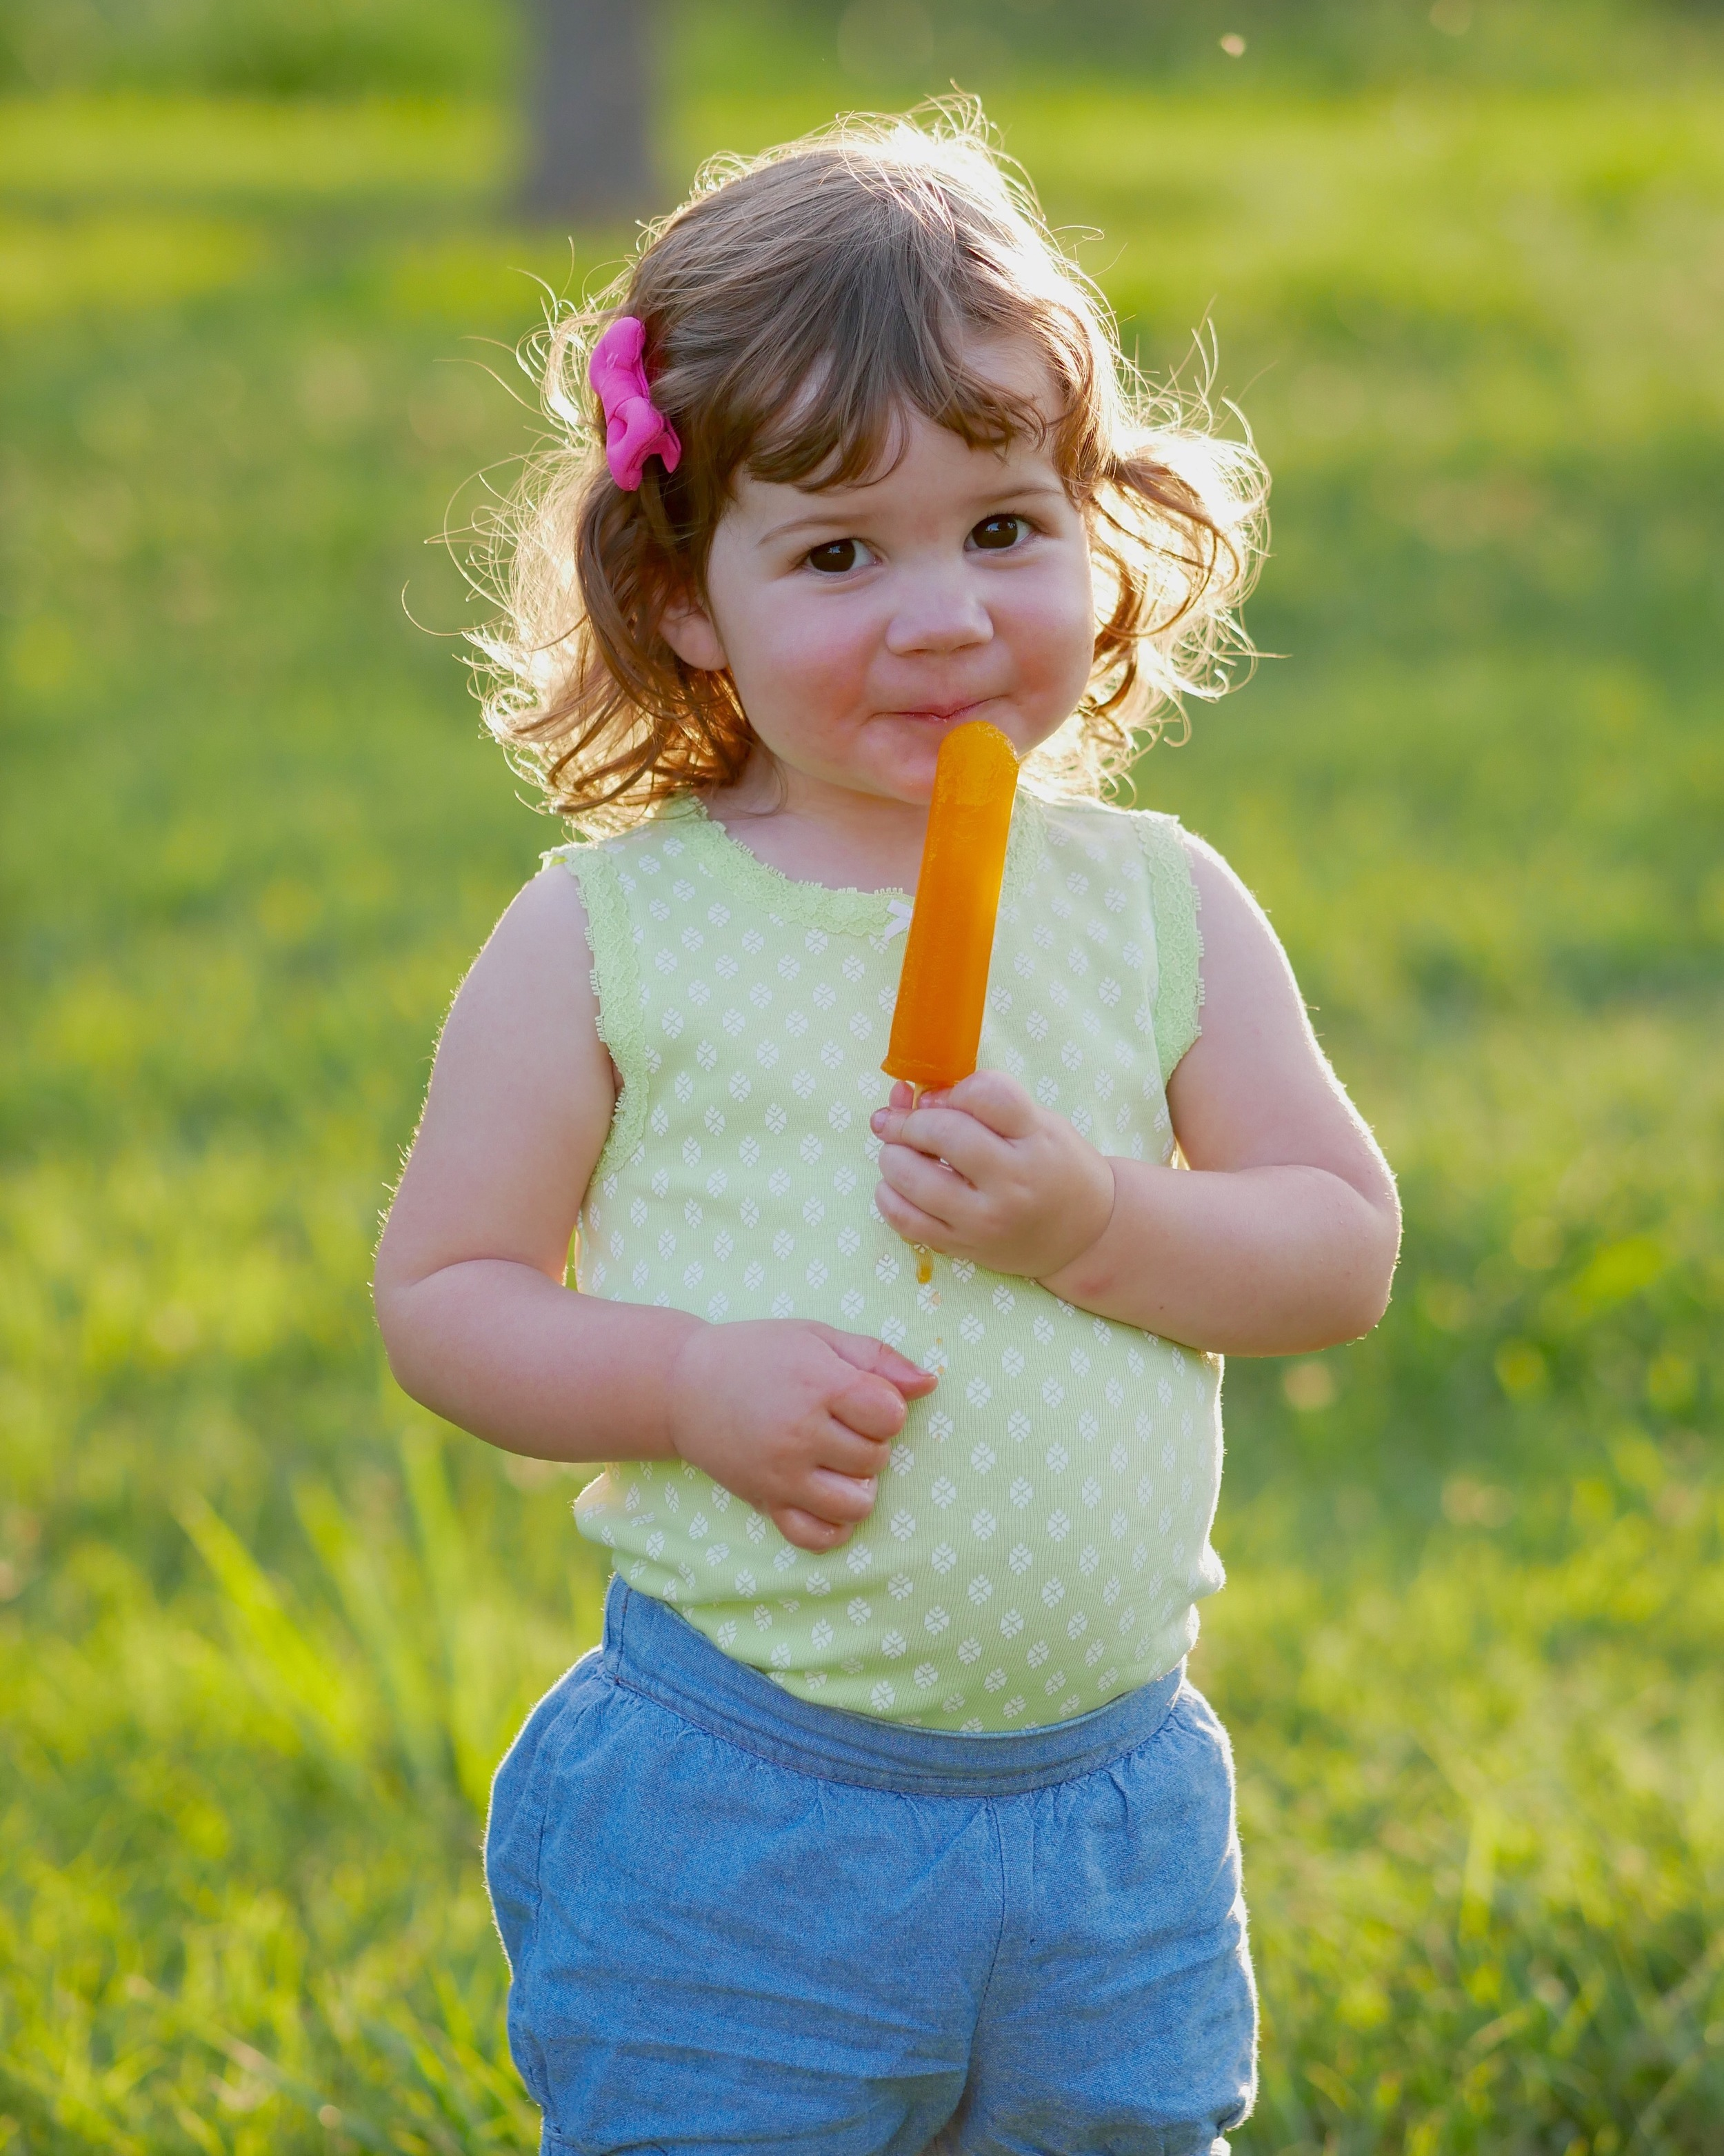 Annabelle with a popsicle